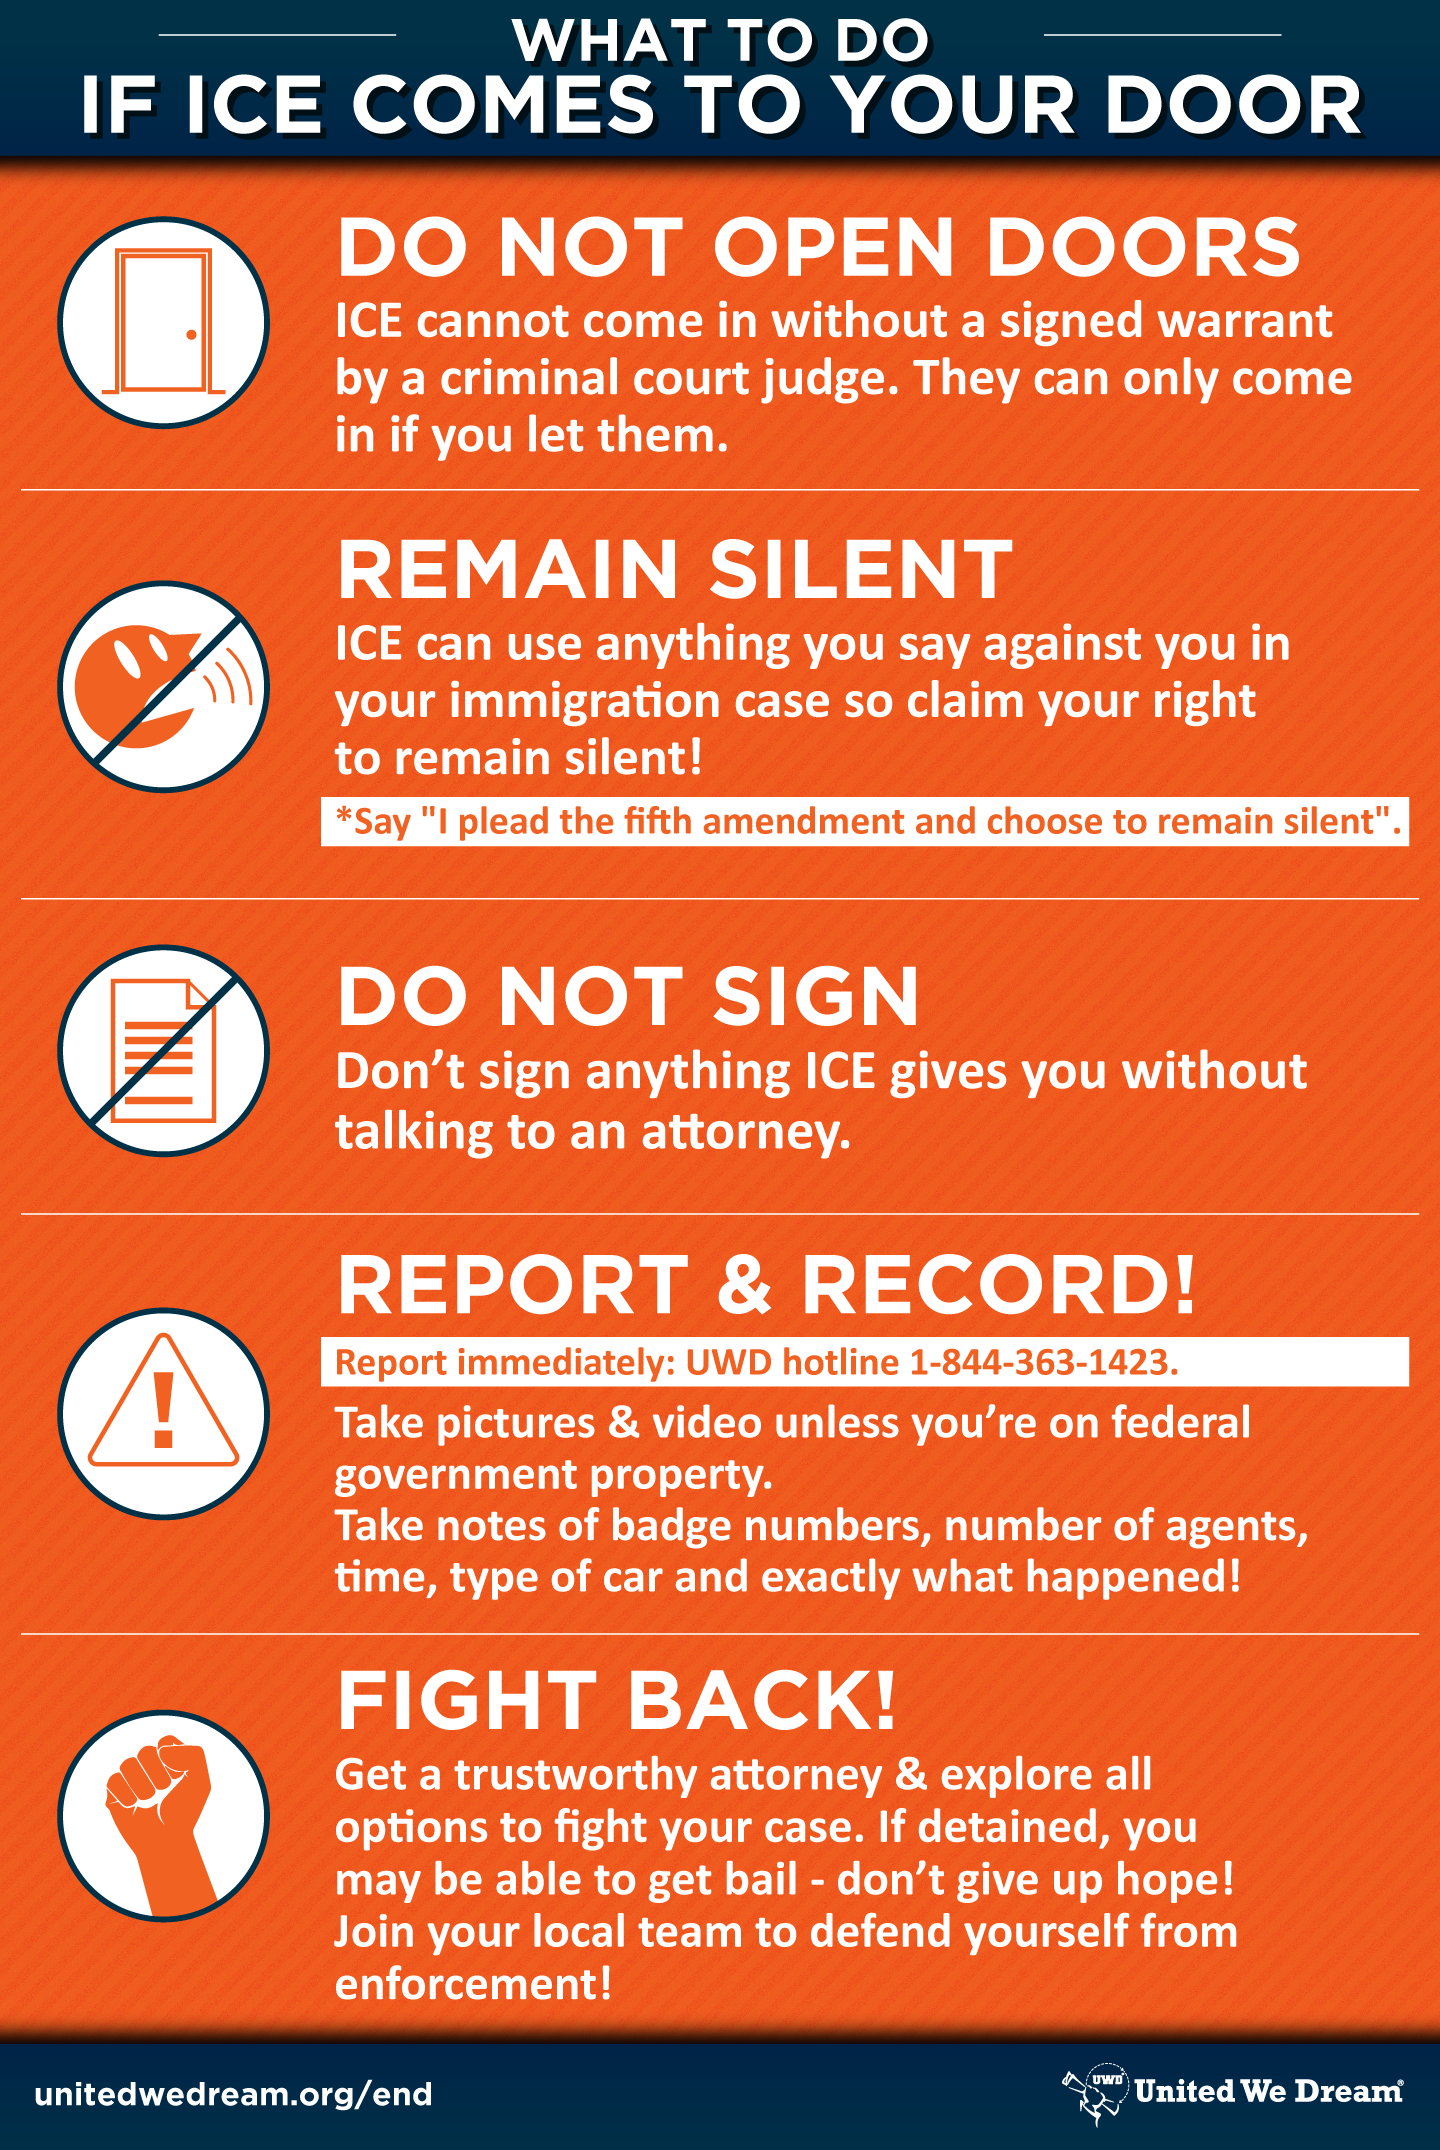 What to do if ICE comes to your door poster